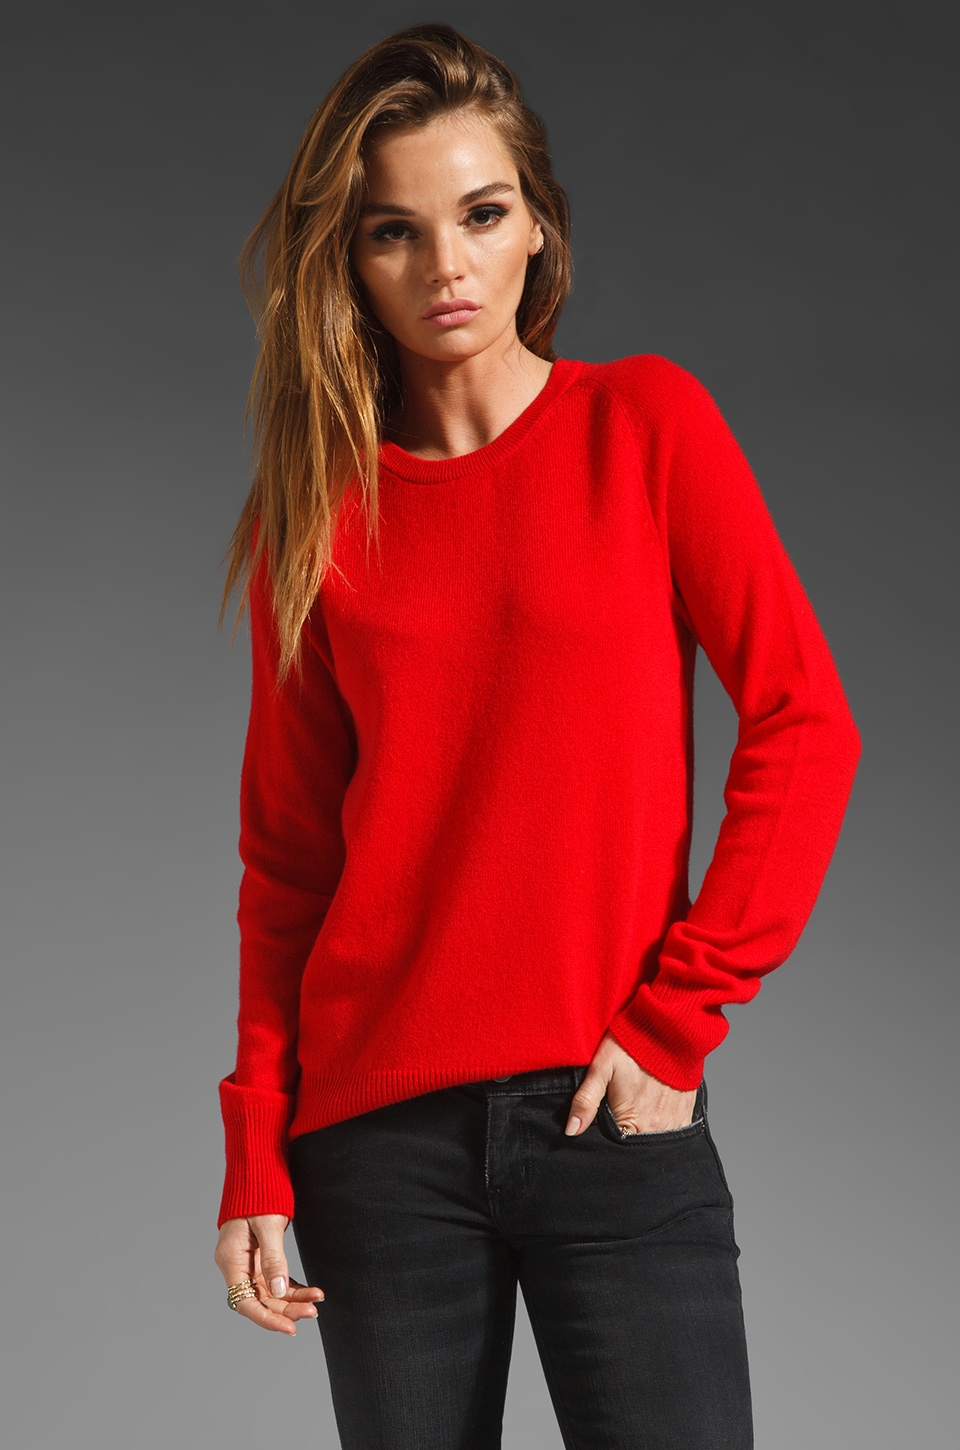 Equipment Sloane Crew Sweater in Grenadine